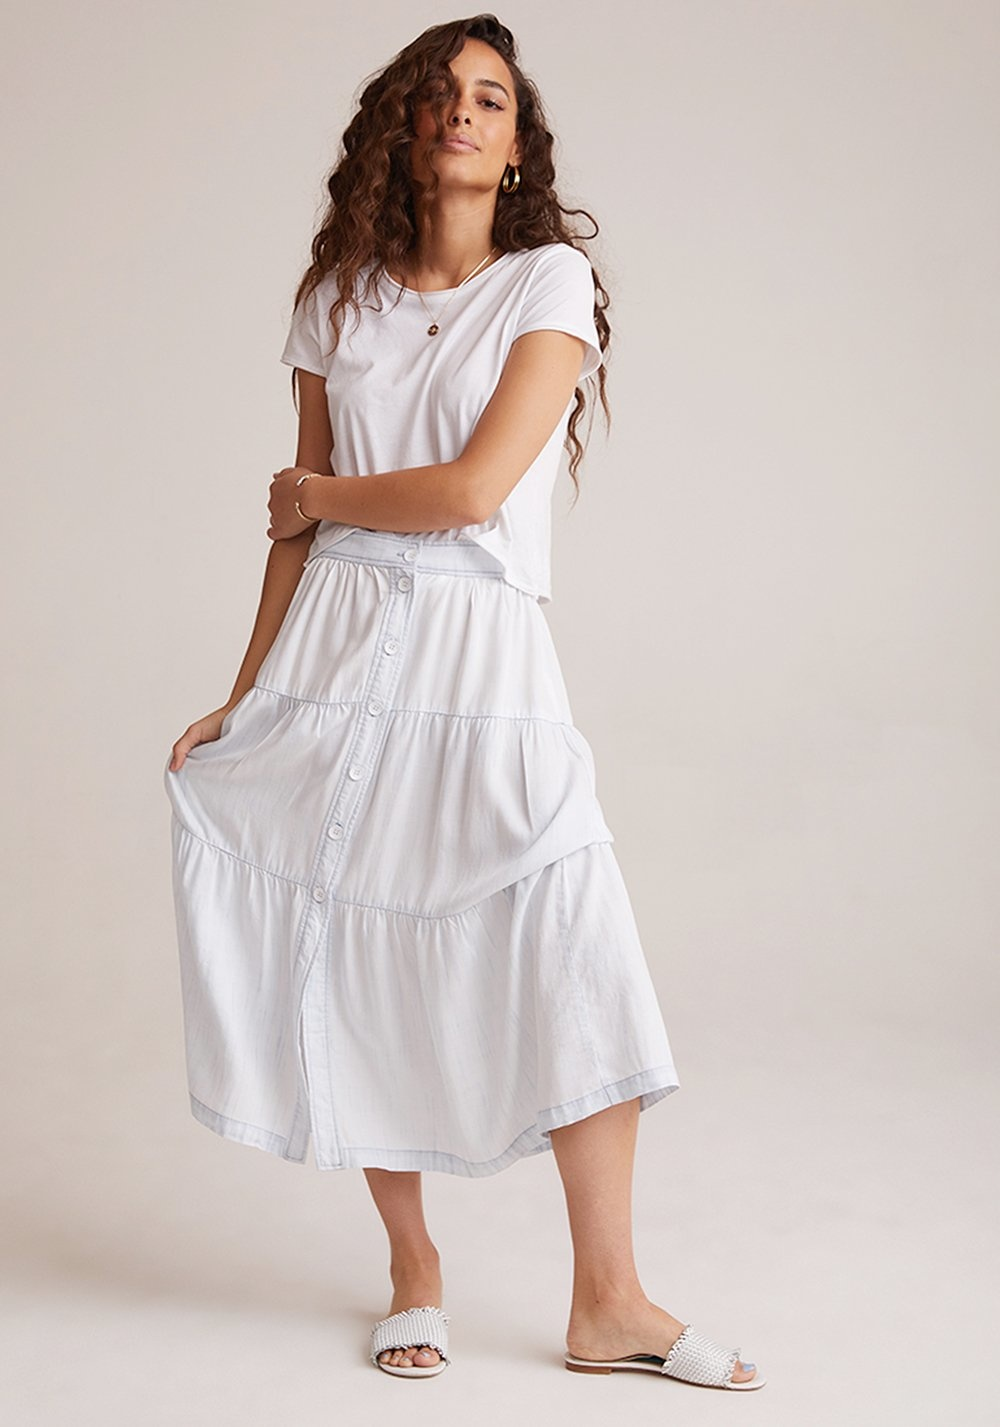 Bella Dahl Bella Dahl Tiered Skirt